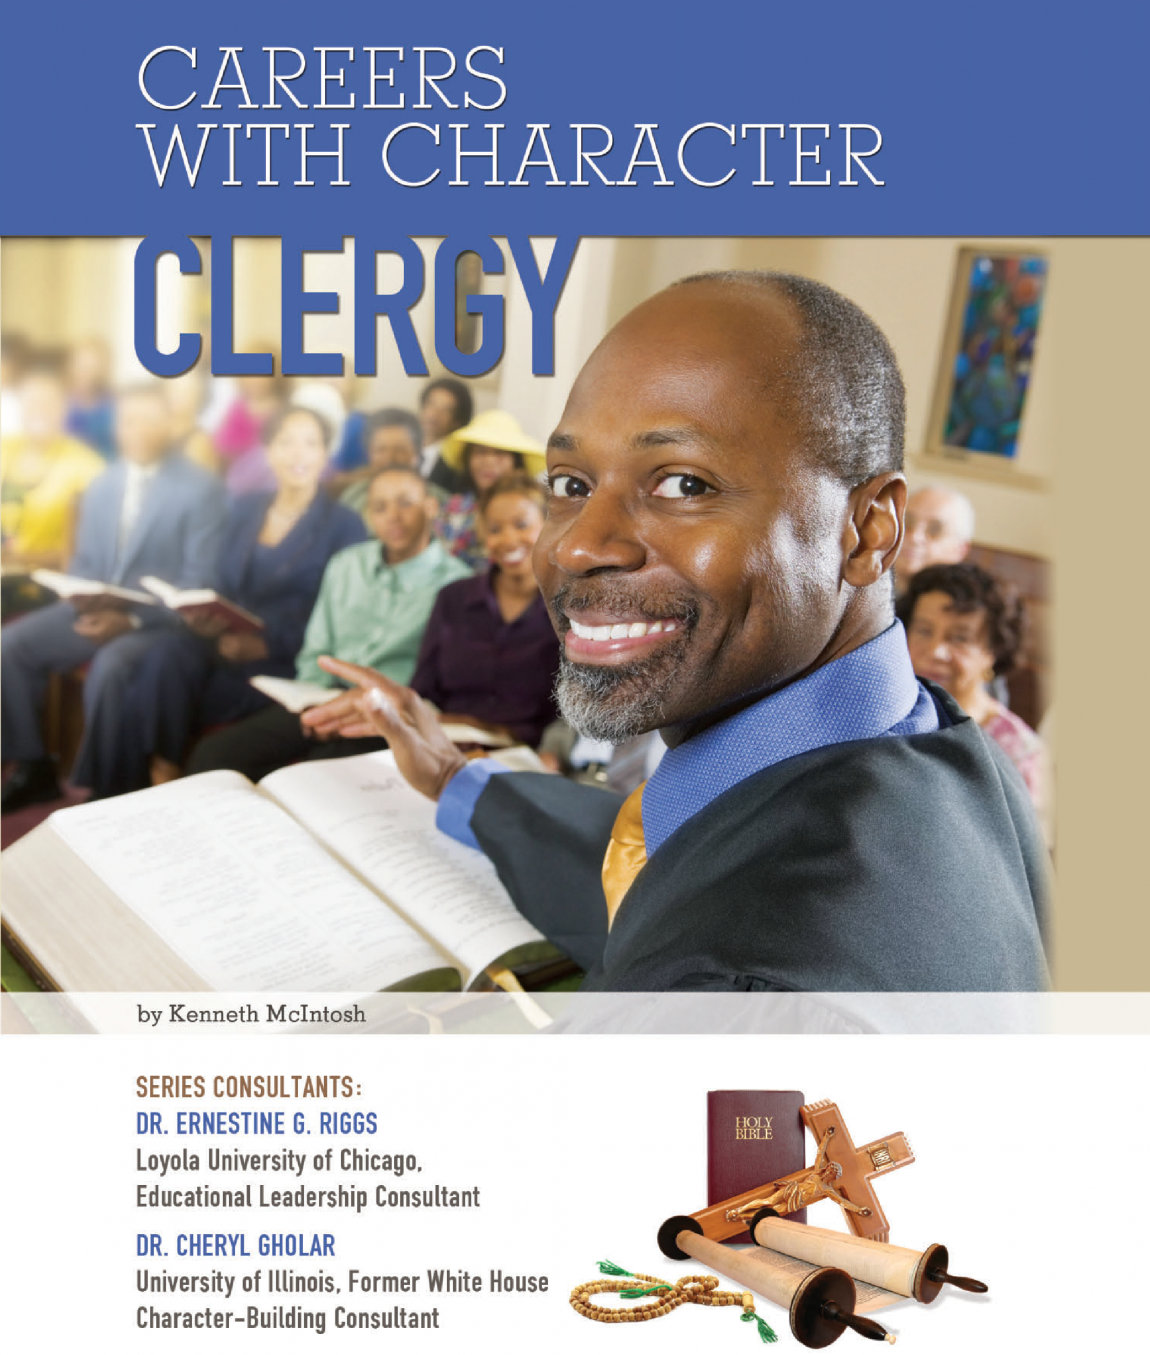 clergy-01.png